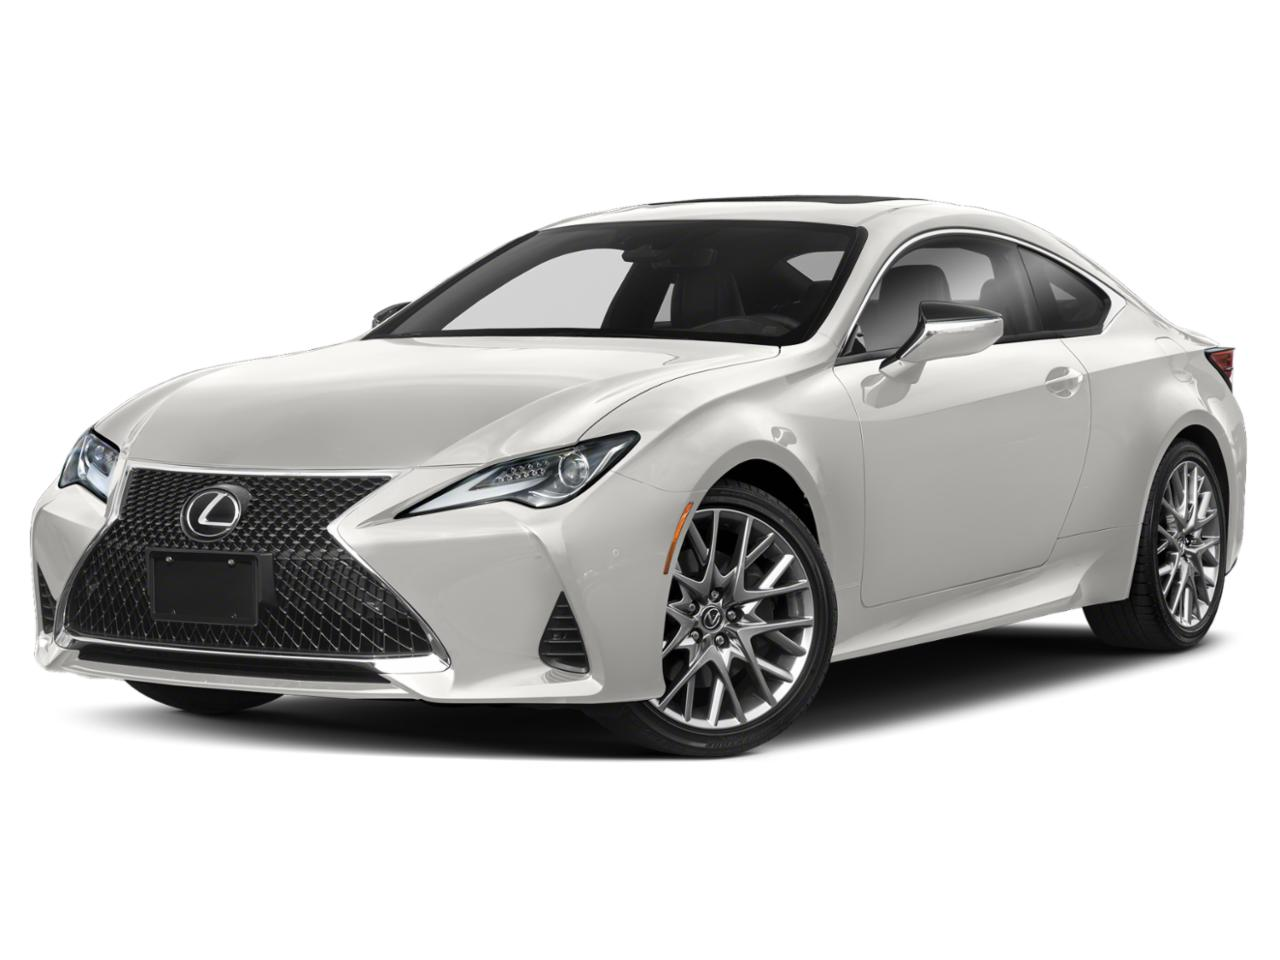 2020 Lexus RC Vehicle Photo in Dallas, TX 75235